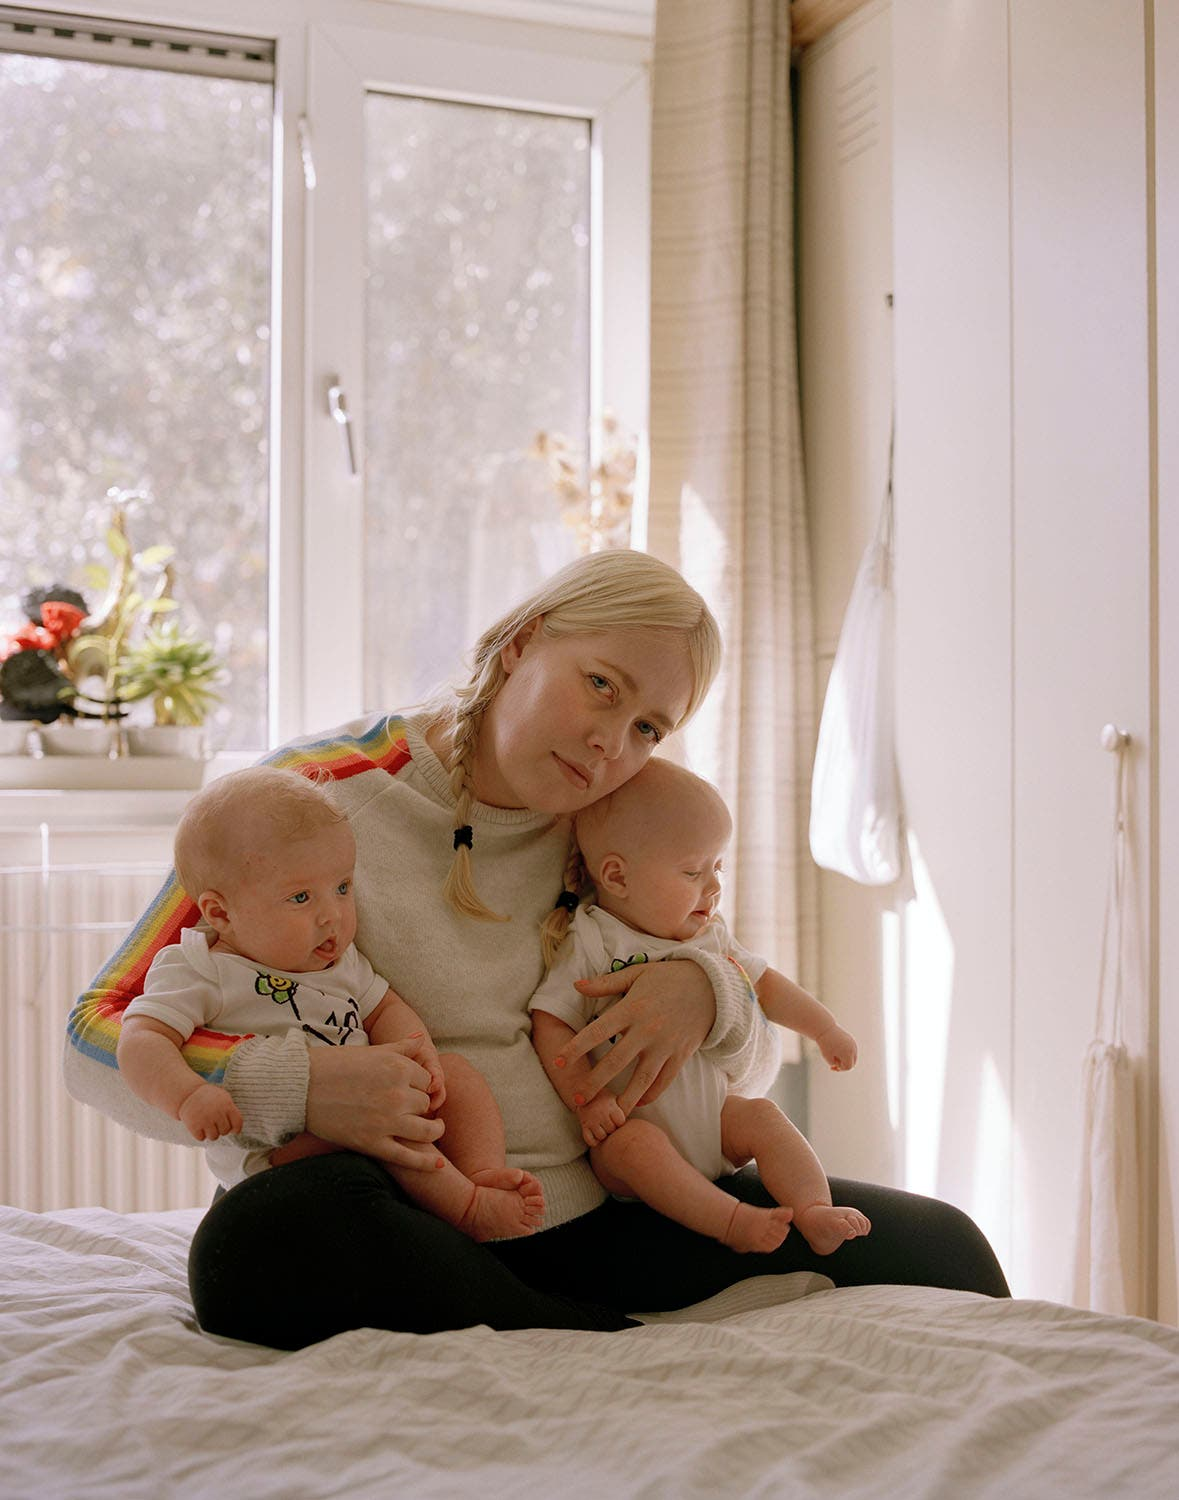 Sadie Catt Explores the Intricacies of Motherhood for Female Photographers